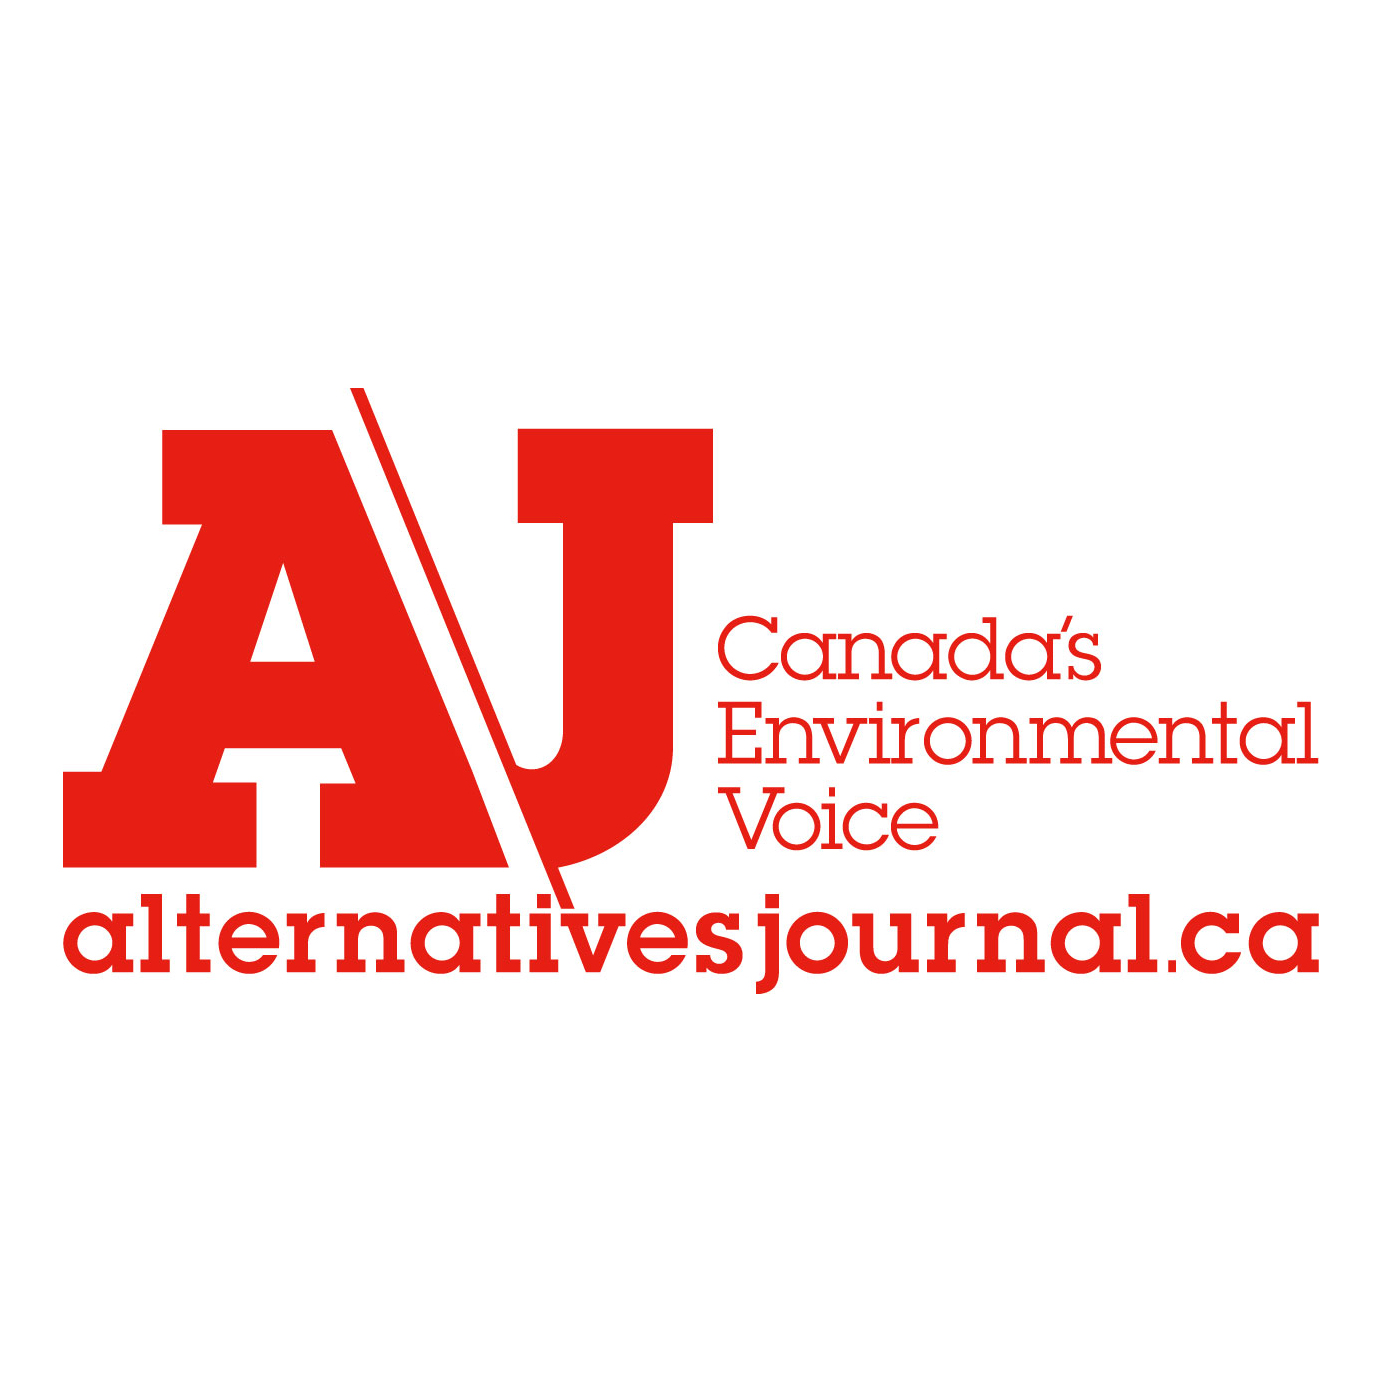 A L T E R N A T I V E S J O U R N A L  Alternatives Journal is the voice of Canada's environmental community. We chronicle, cover and encourage environmental thinking and action across the broadest spectrum – everything is related to environment in one way or another. A\J has produced two fashion-themed issues, and various other articles on the subject in other issues of the magazine, as well as online at alternativesjournal.ca. A\J is produced by the registered charity Alternatives Inc.